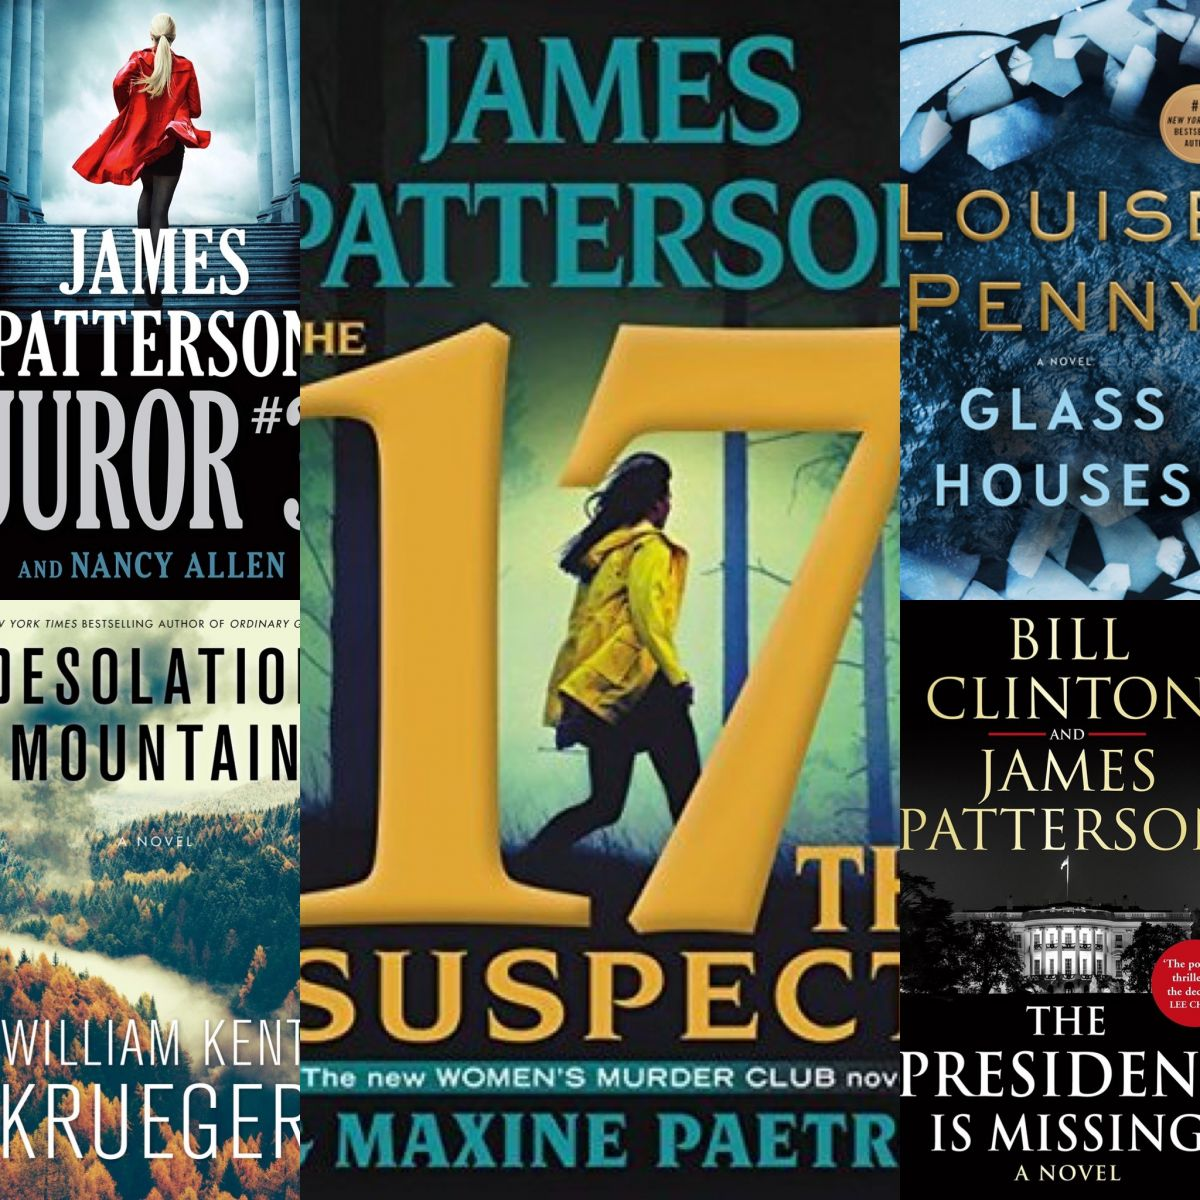 Top five books collage